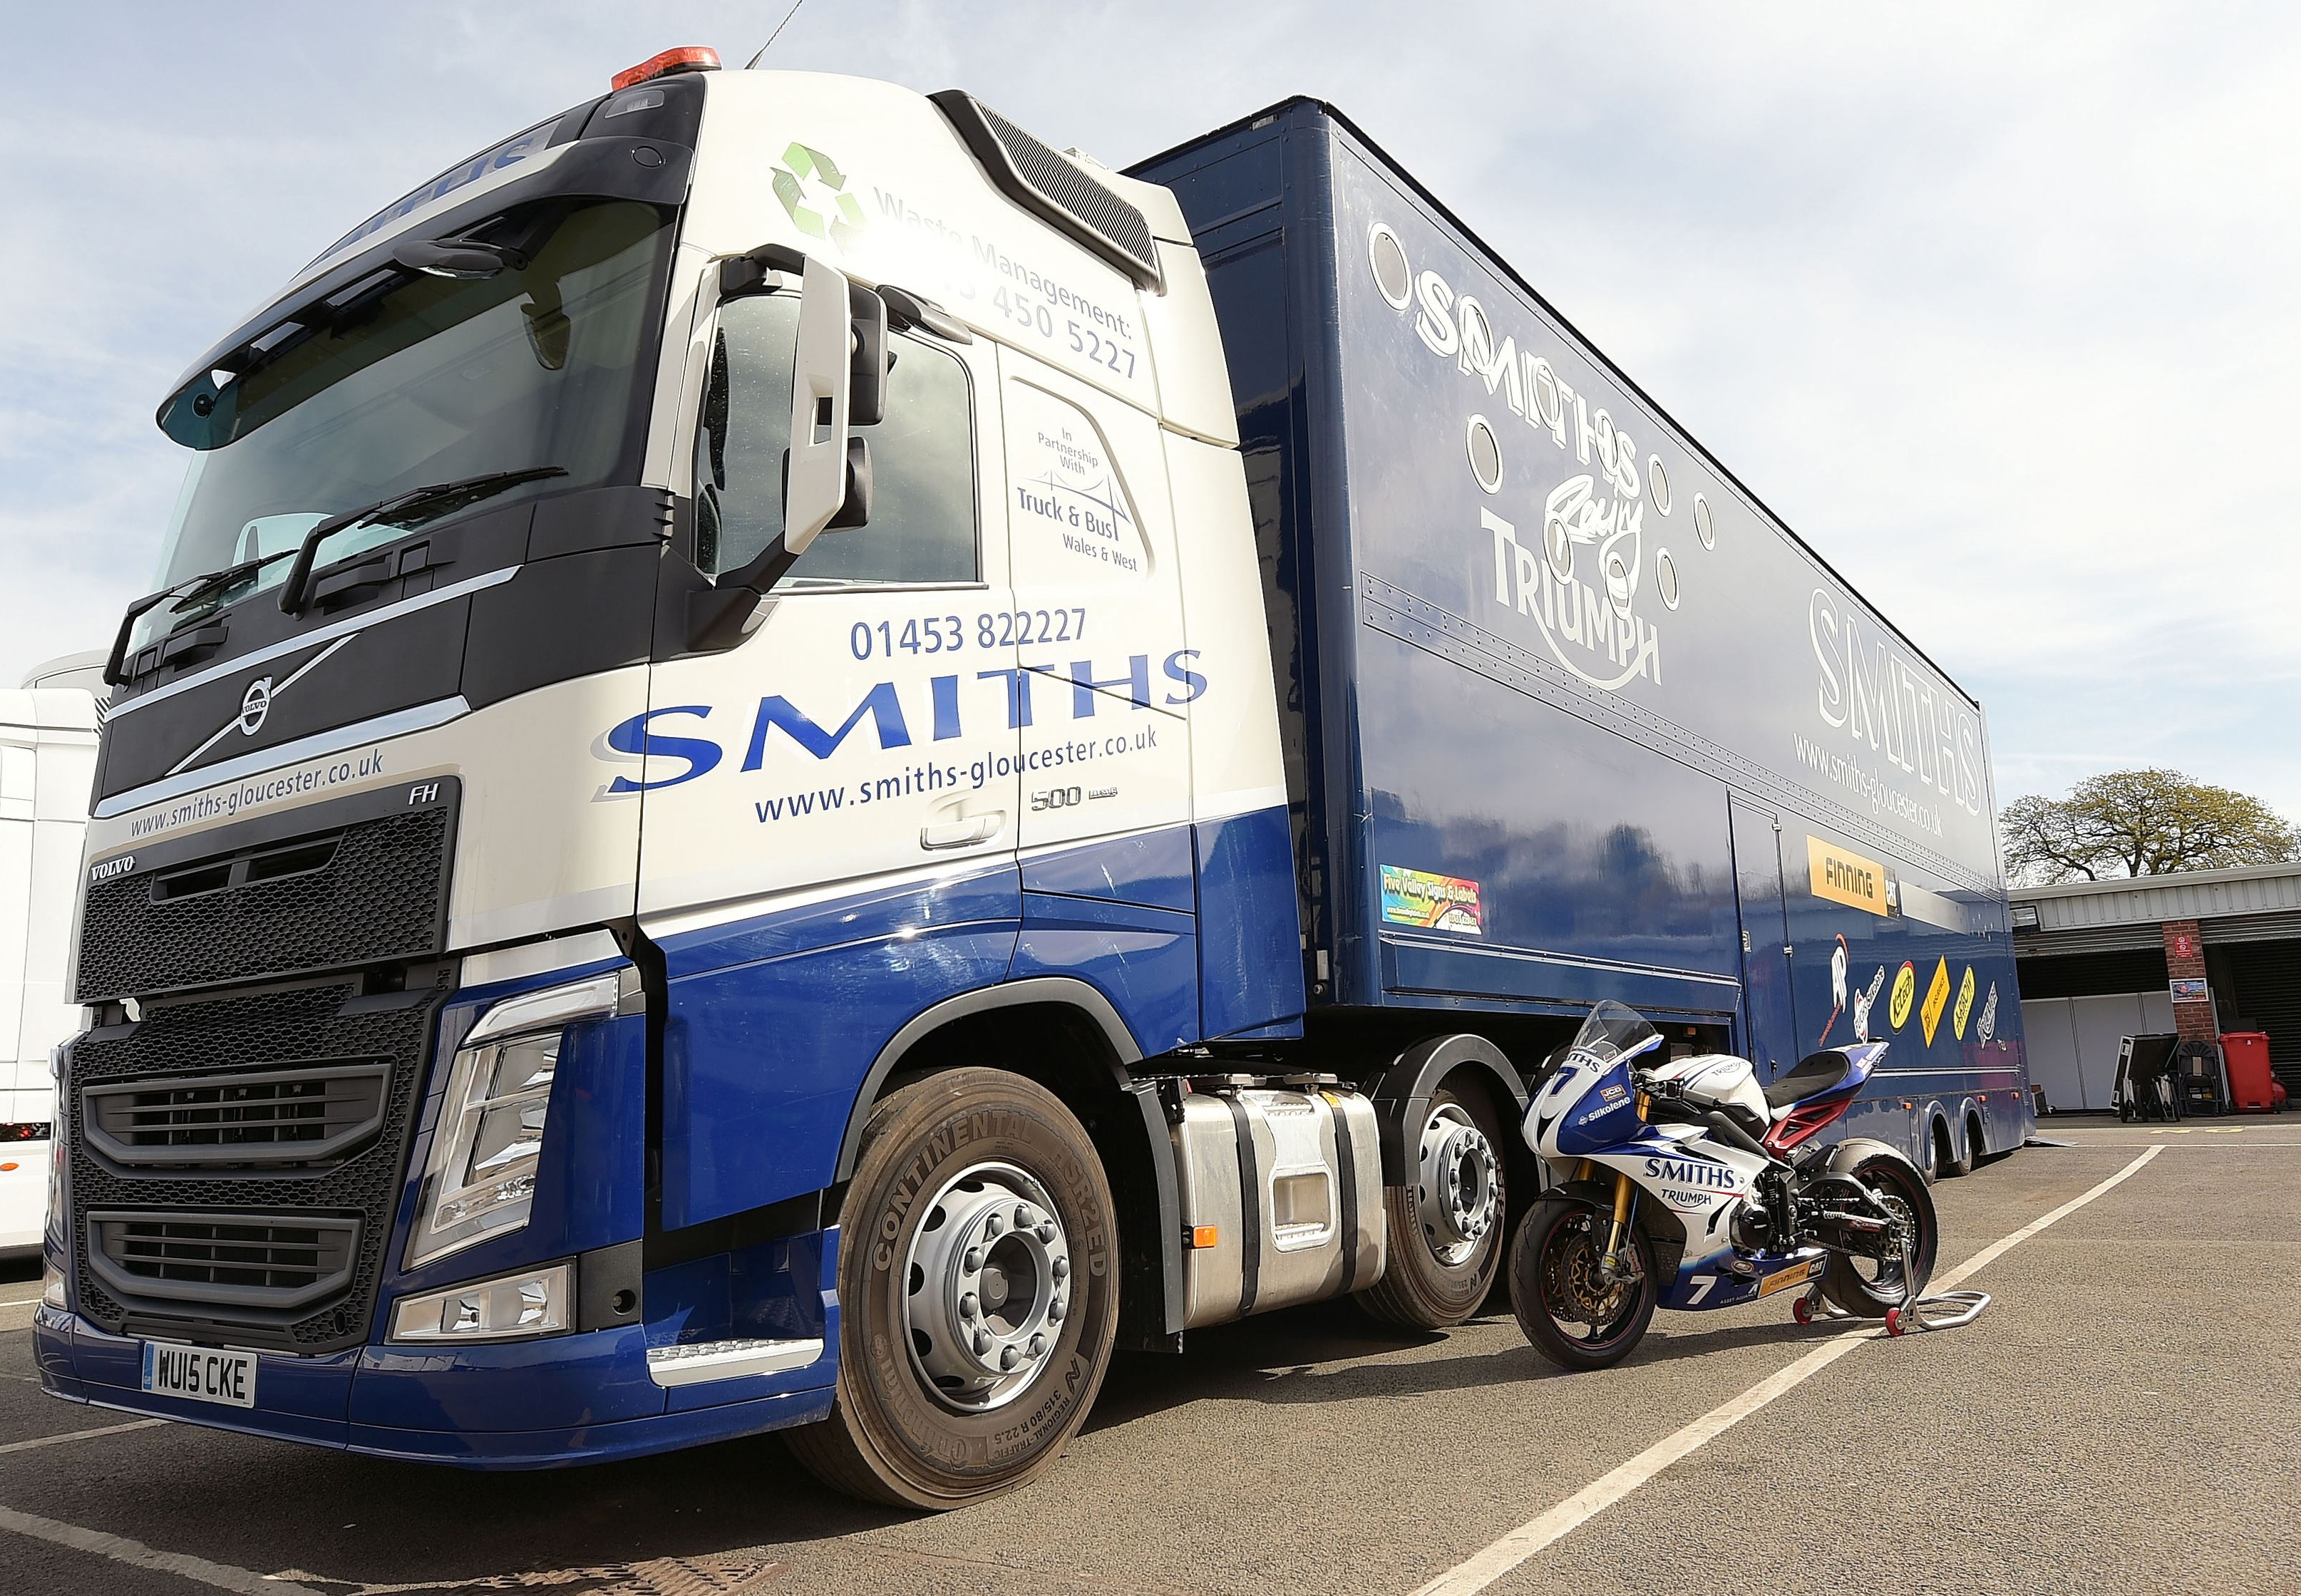 Smiths Racing head for the chequered flag with Truck and Bus Wales